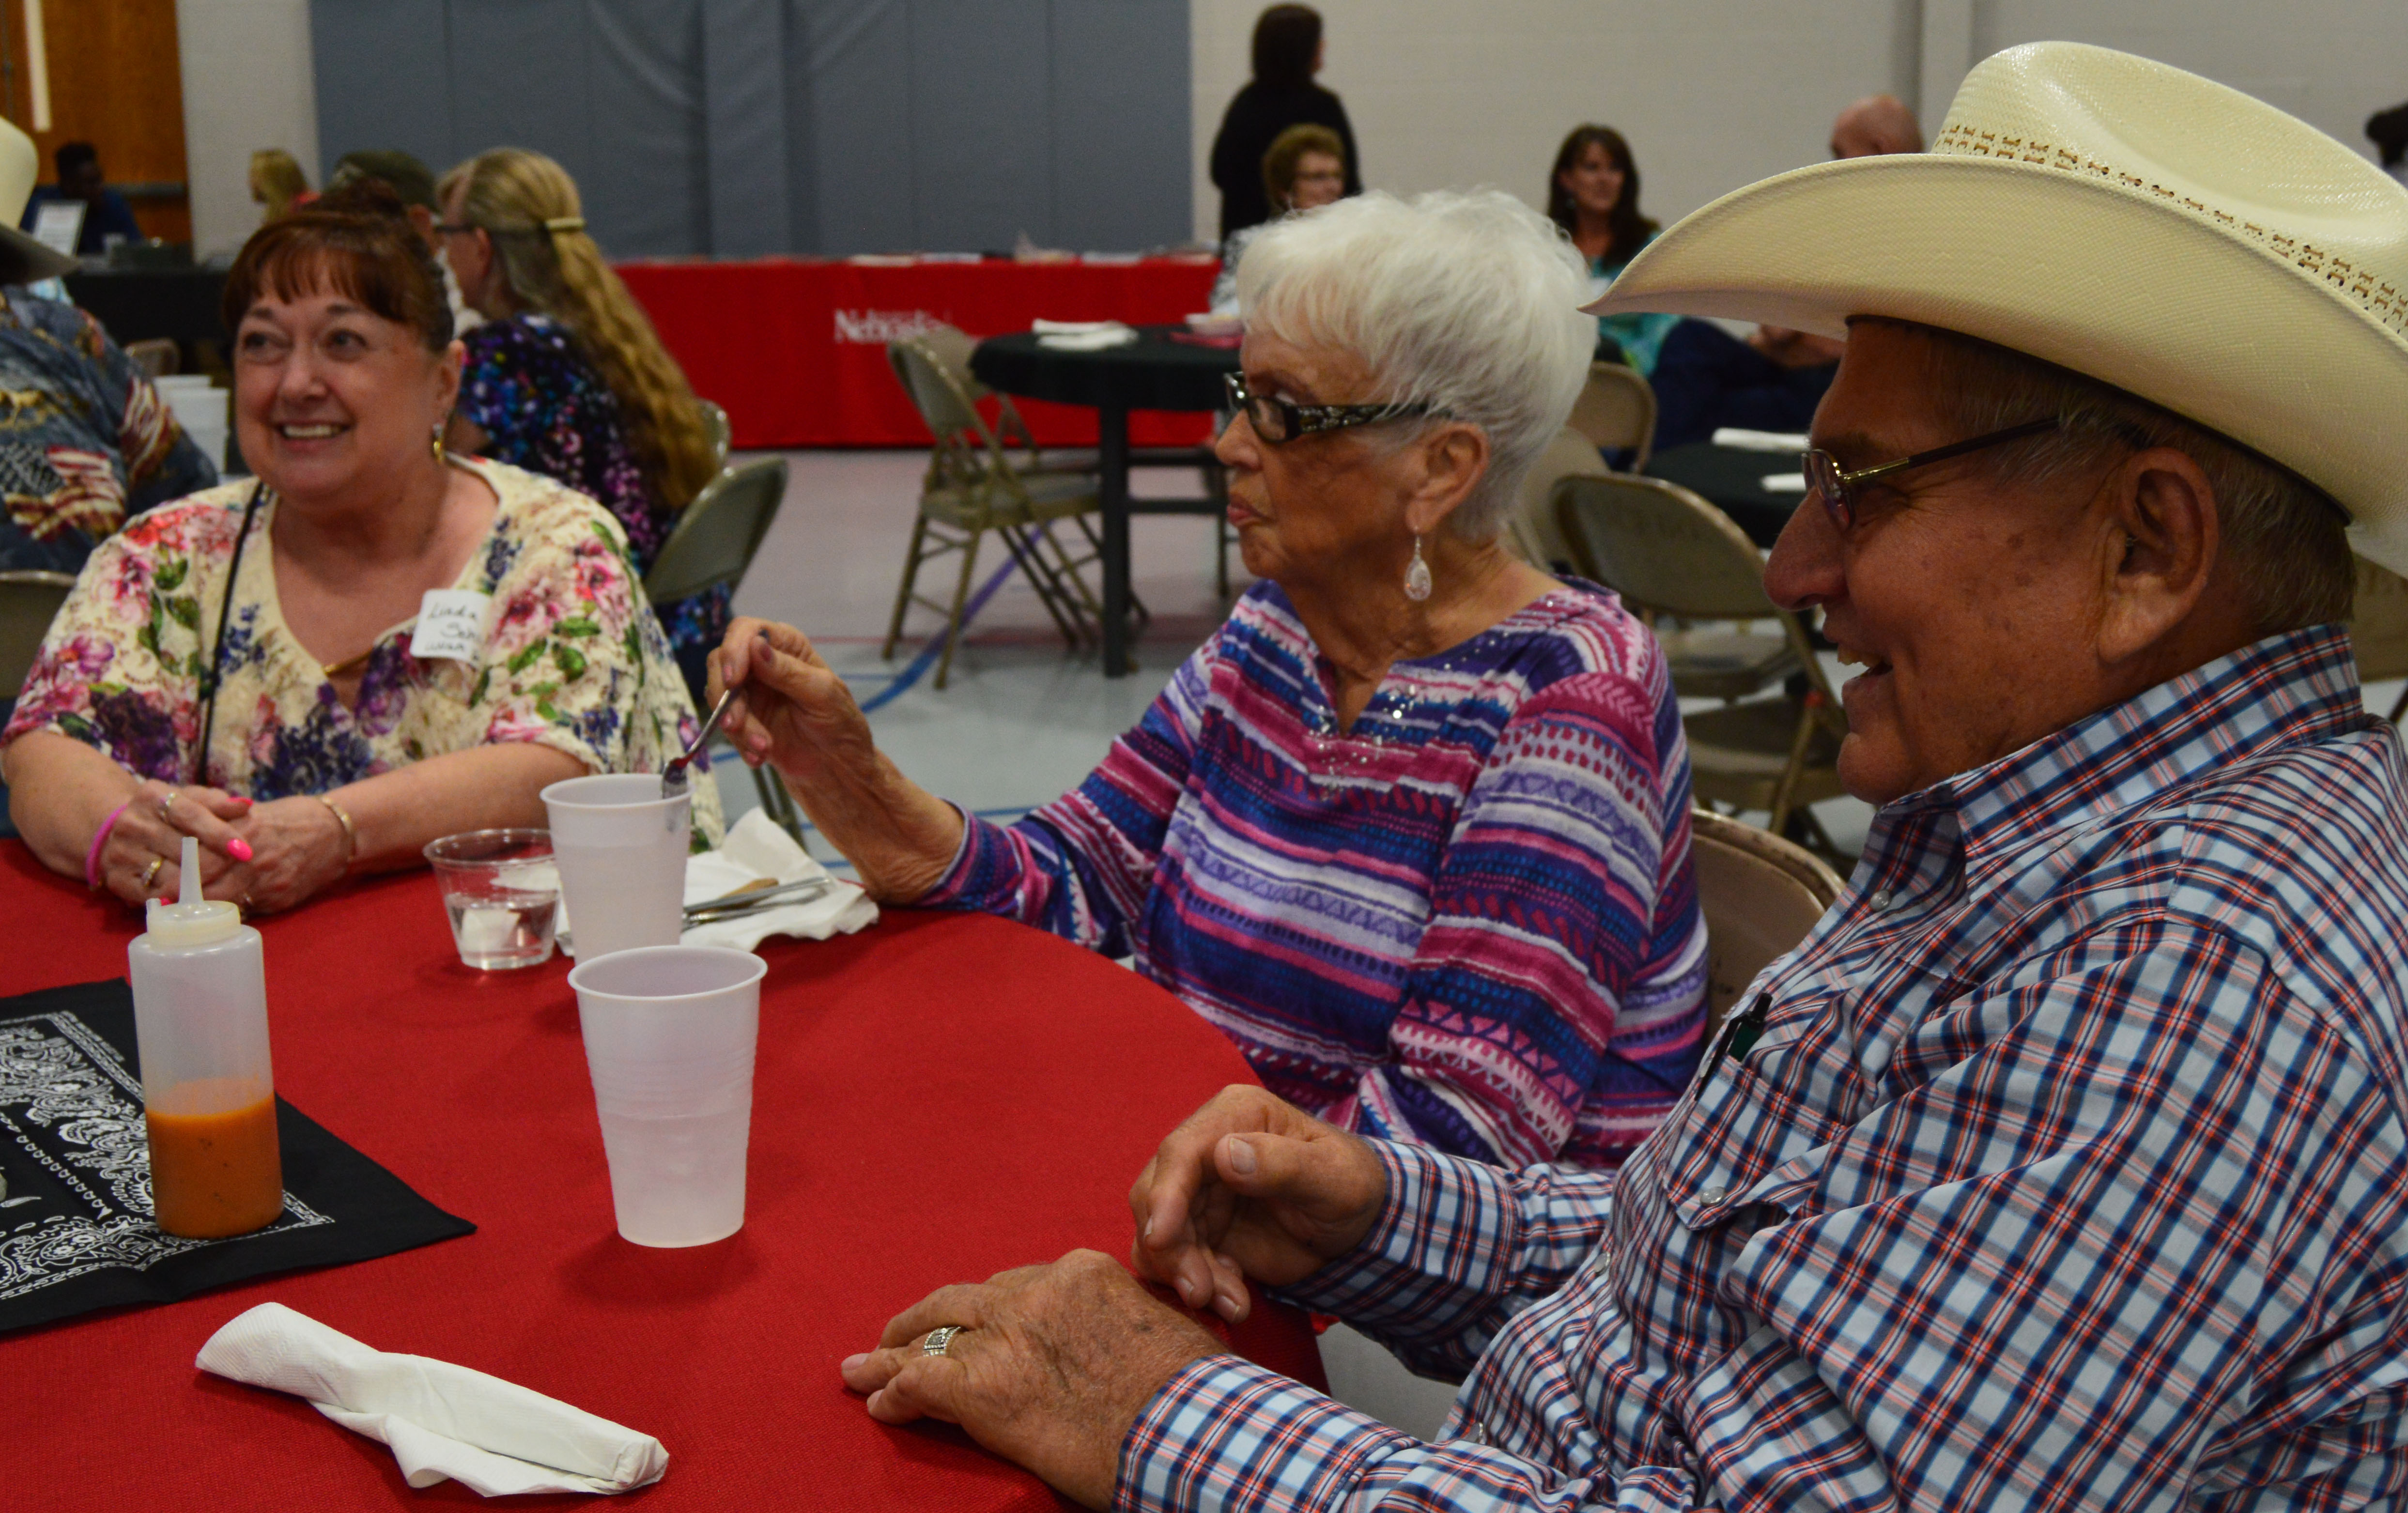 Aggie alumni and former staff reminisced Saturday at the 2018 banquet in Curtis. (NCTA News photo)